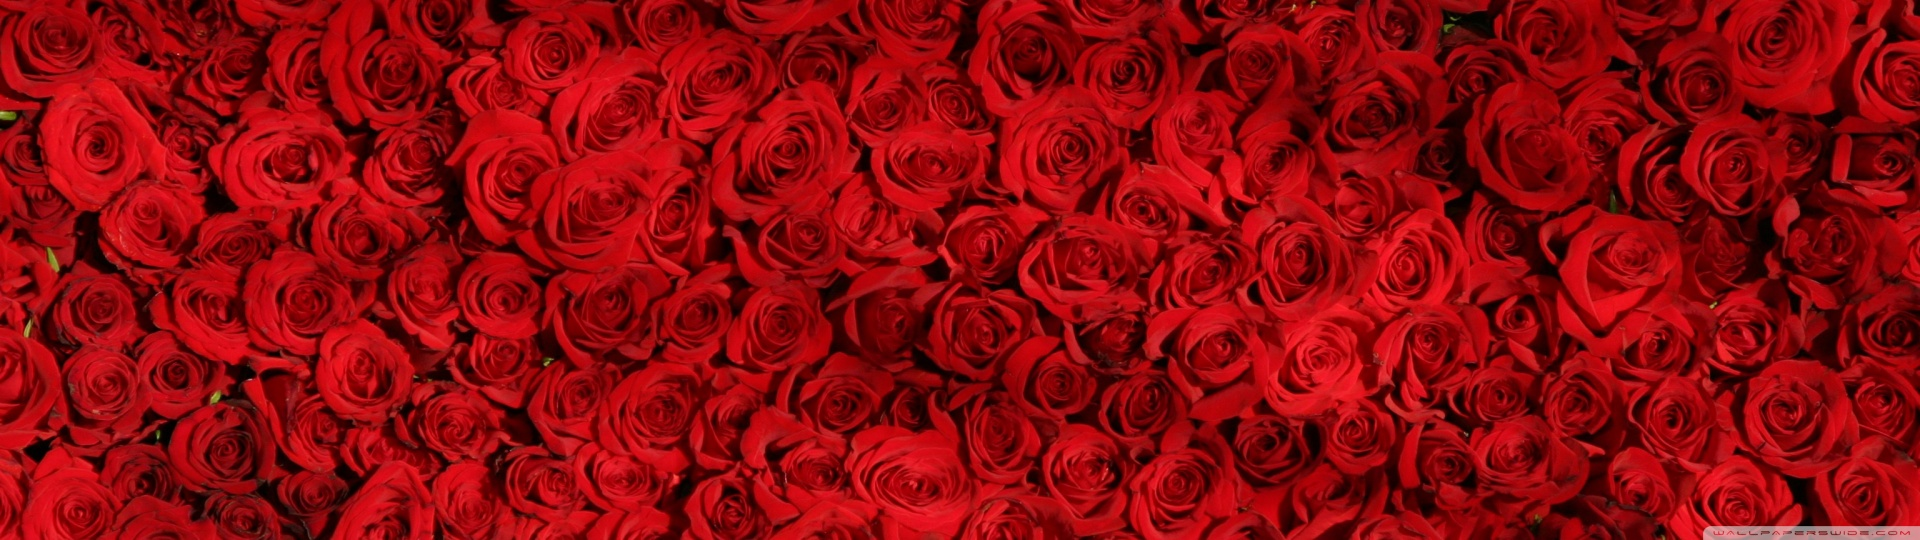 Red and white rose wallpaper designs